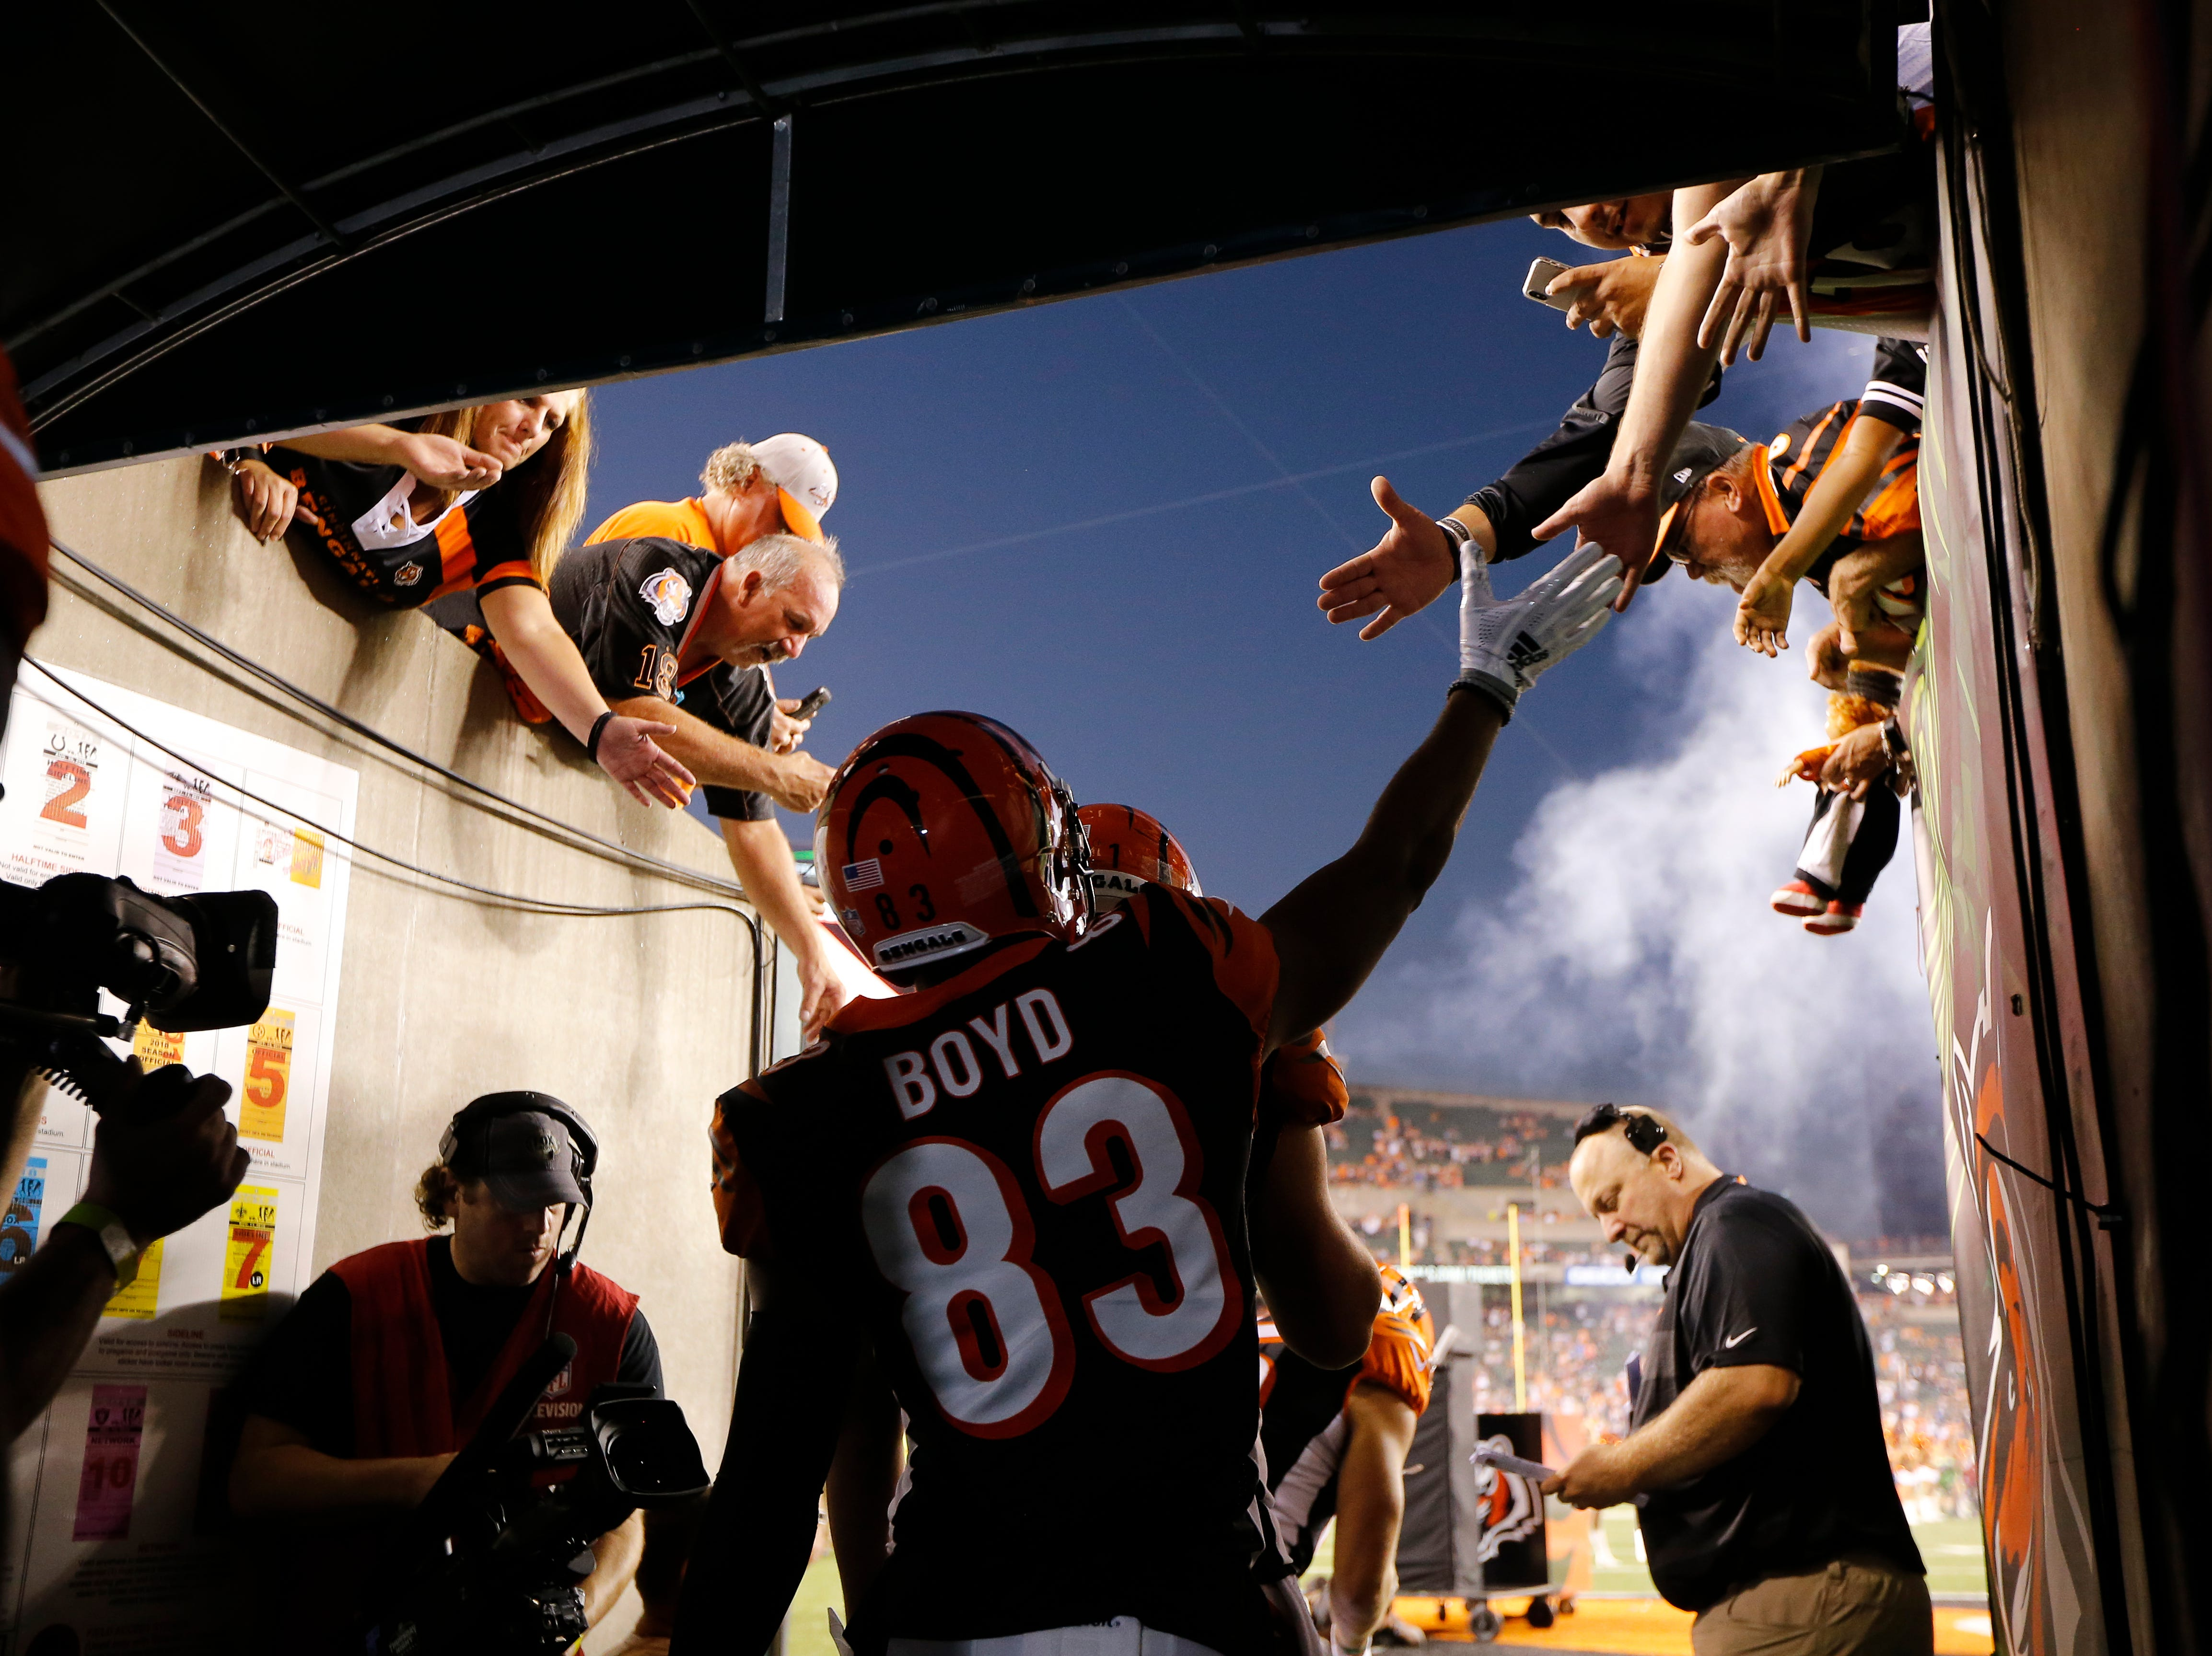 Cincinnati Bengals wide receiver Tyler Boyd (83) reaches out o fans in the tunnel before the first quarter of the NFL Week 2 game between the Cincinnati Bengals and the Baltimore Ravens at Paul Brown Stadium in downtown Cincinnati on Thursday, Sept. 13, 2018. The Bengals led 28-14 at halftime.